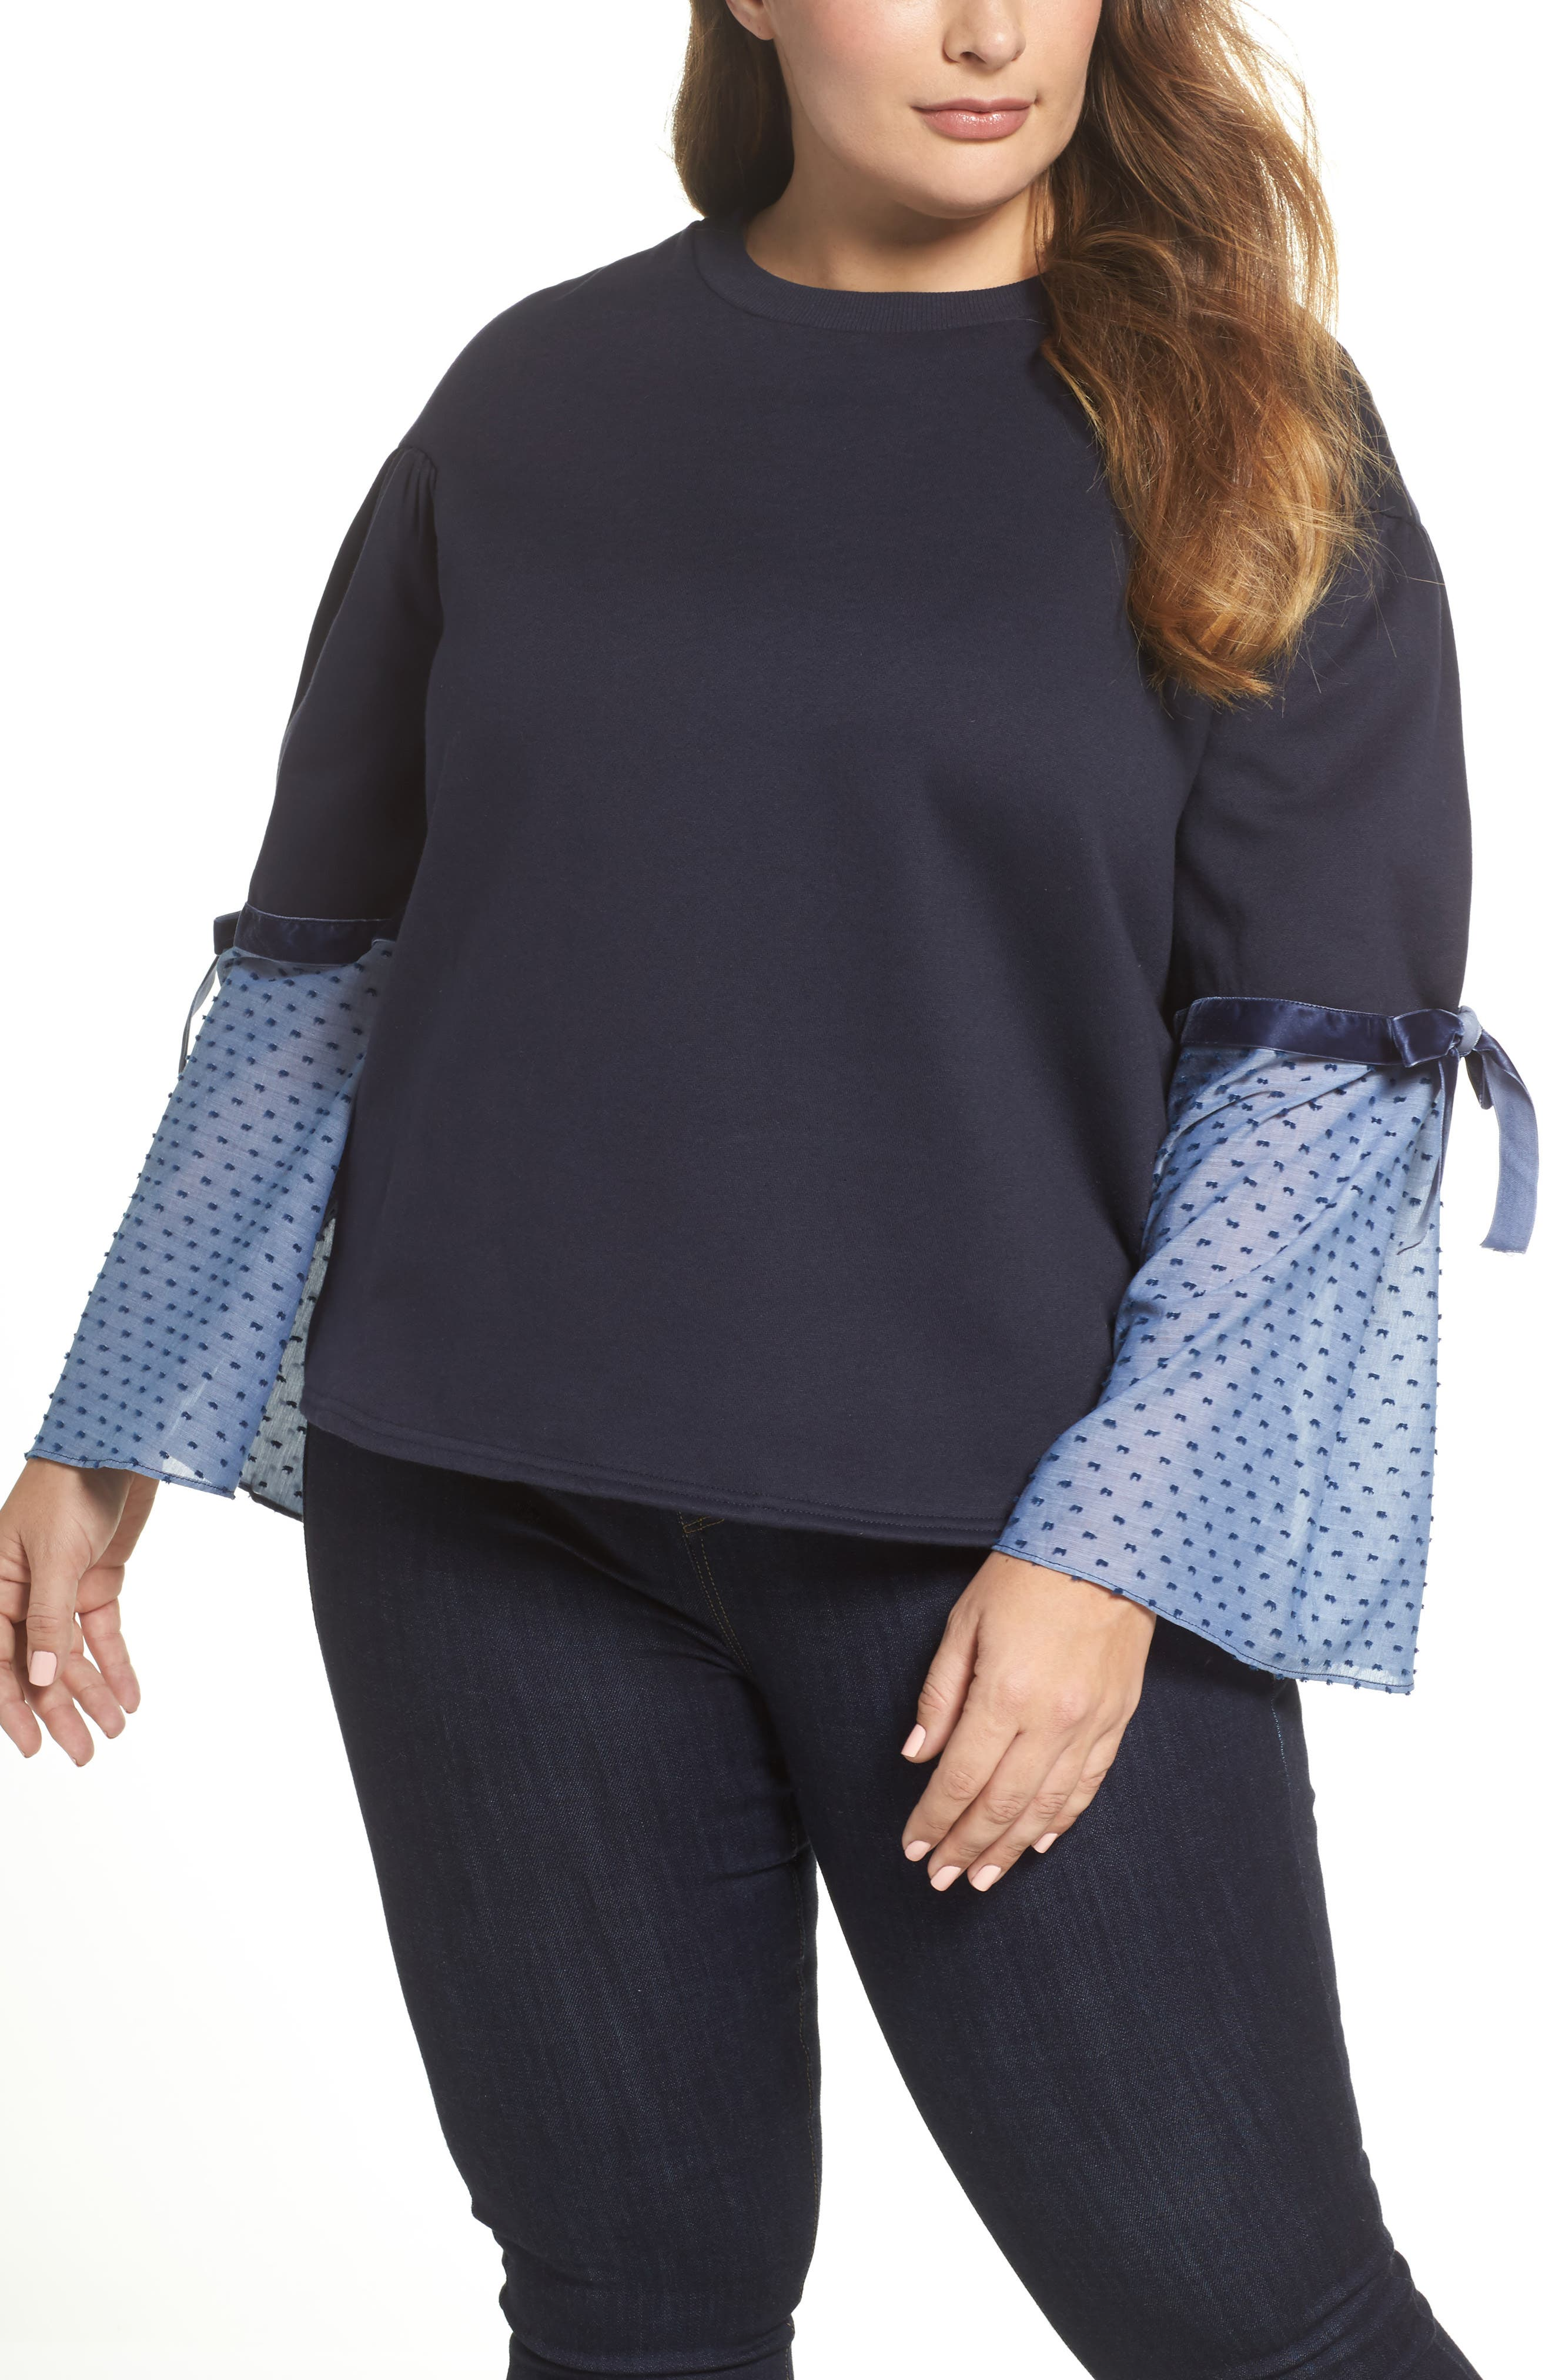 Sweatshirt with Woven Tie Sleeves,                         Main,                         color, Navy